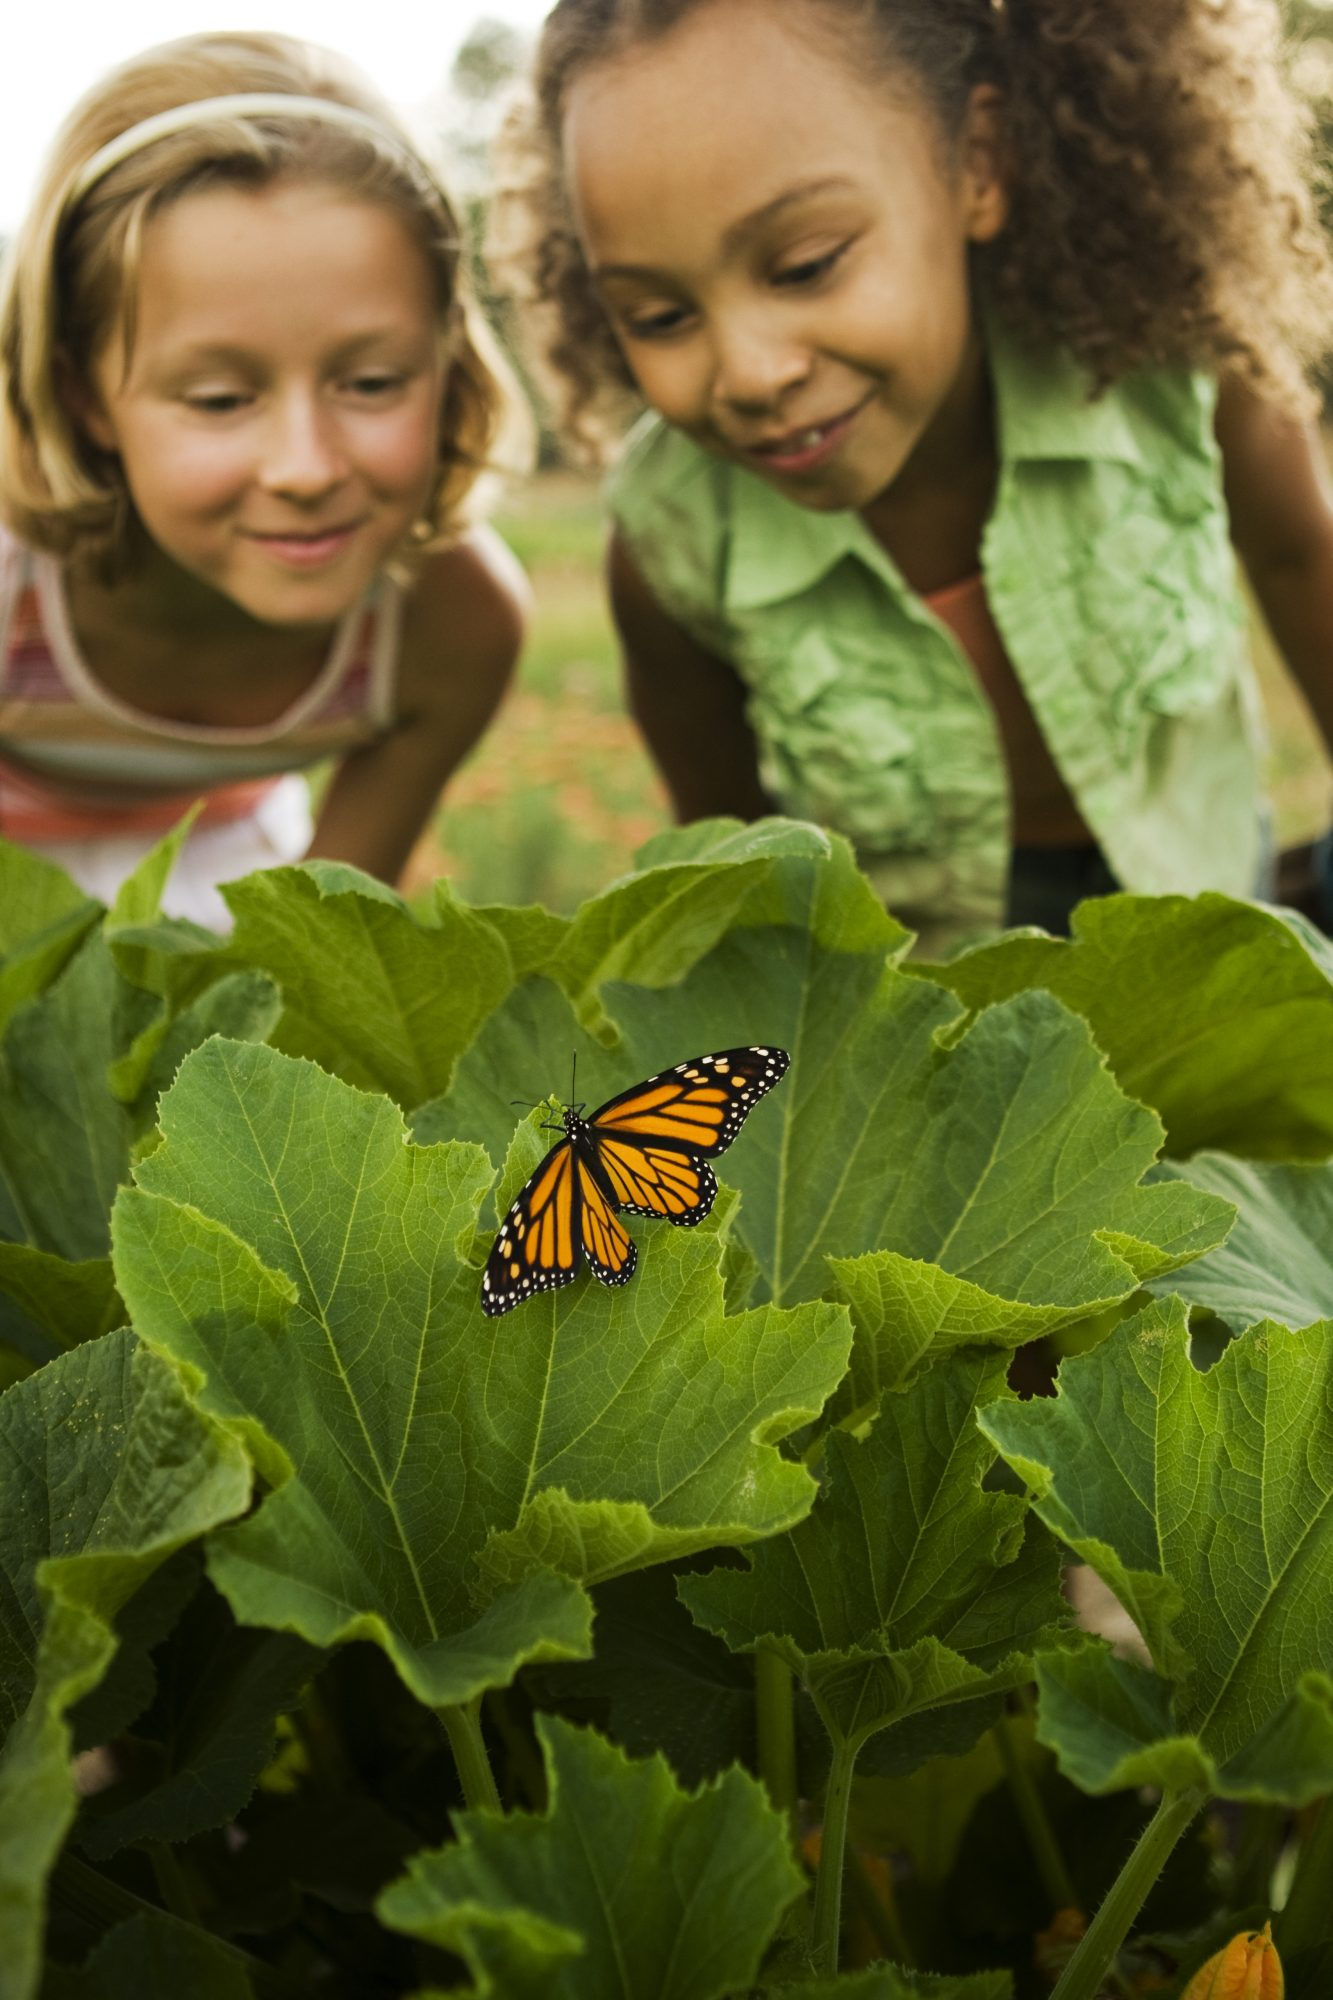 girls looking at a butterfly in garden